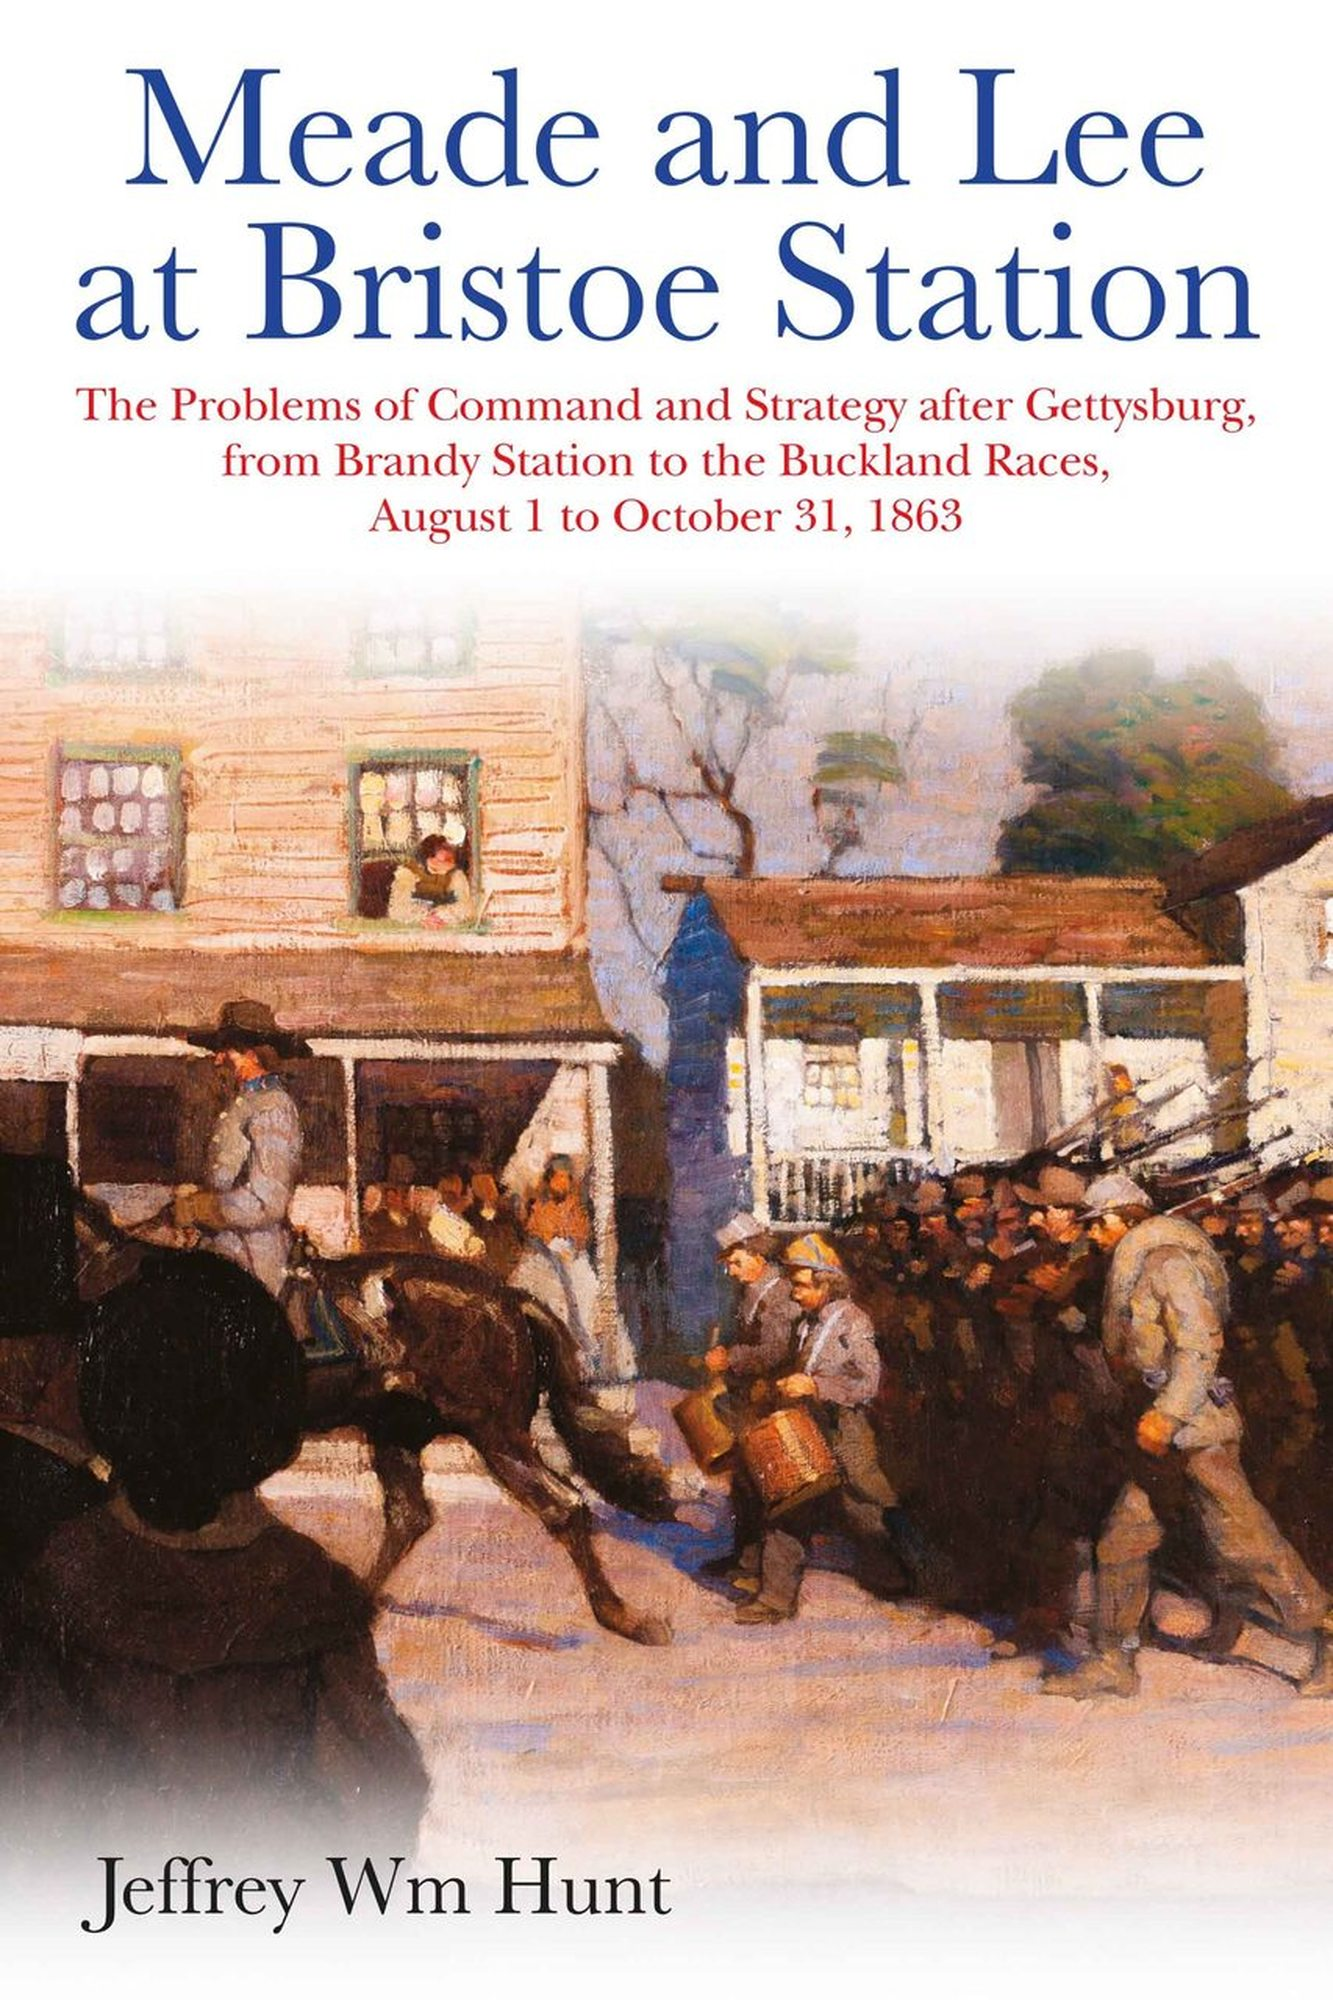 Meade and Lee at Bristoe Station: The Problems of Command and Strategy After Gettysburg, from Brandy Station to the Buckland Races, August 1 to October 31, 1863